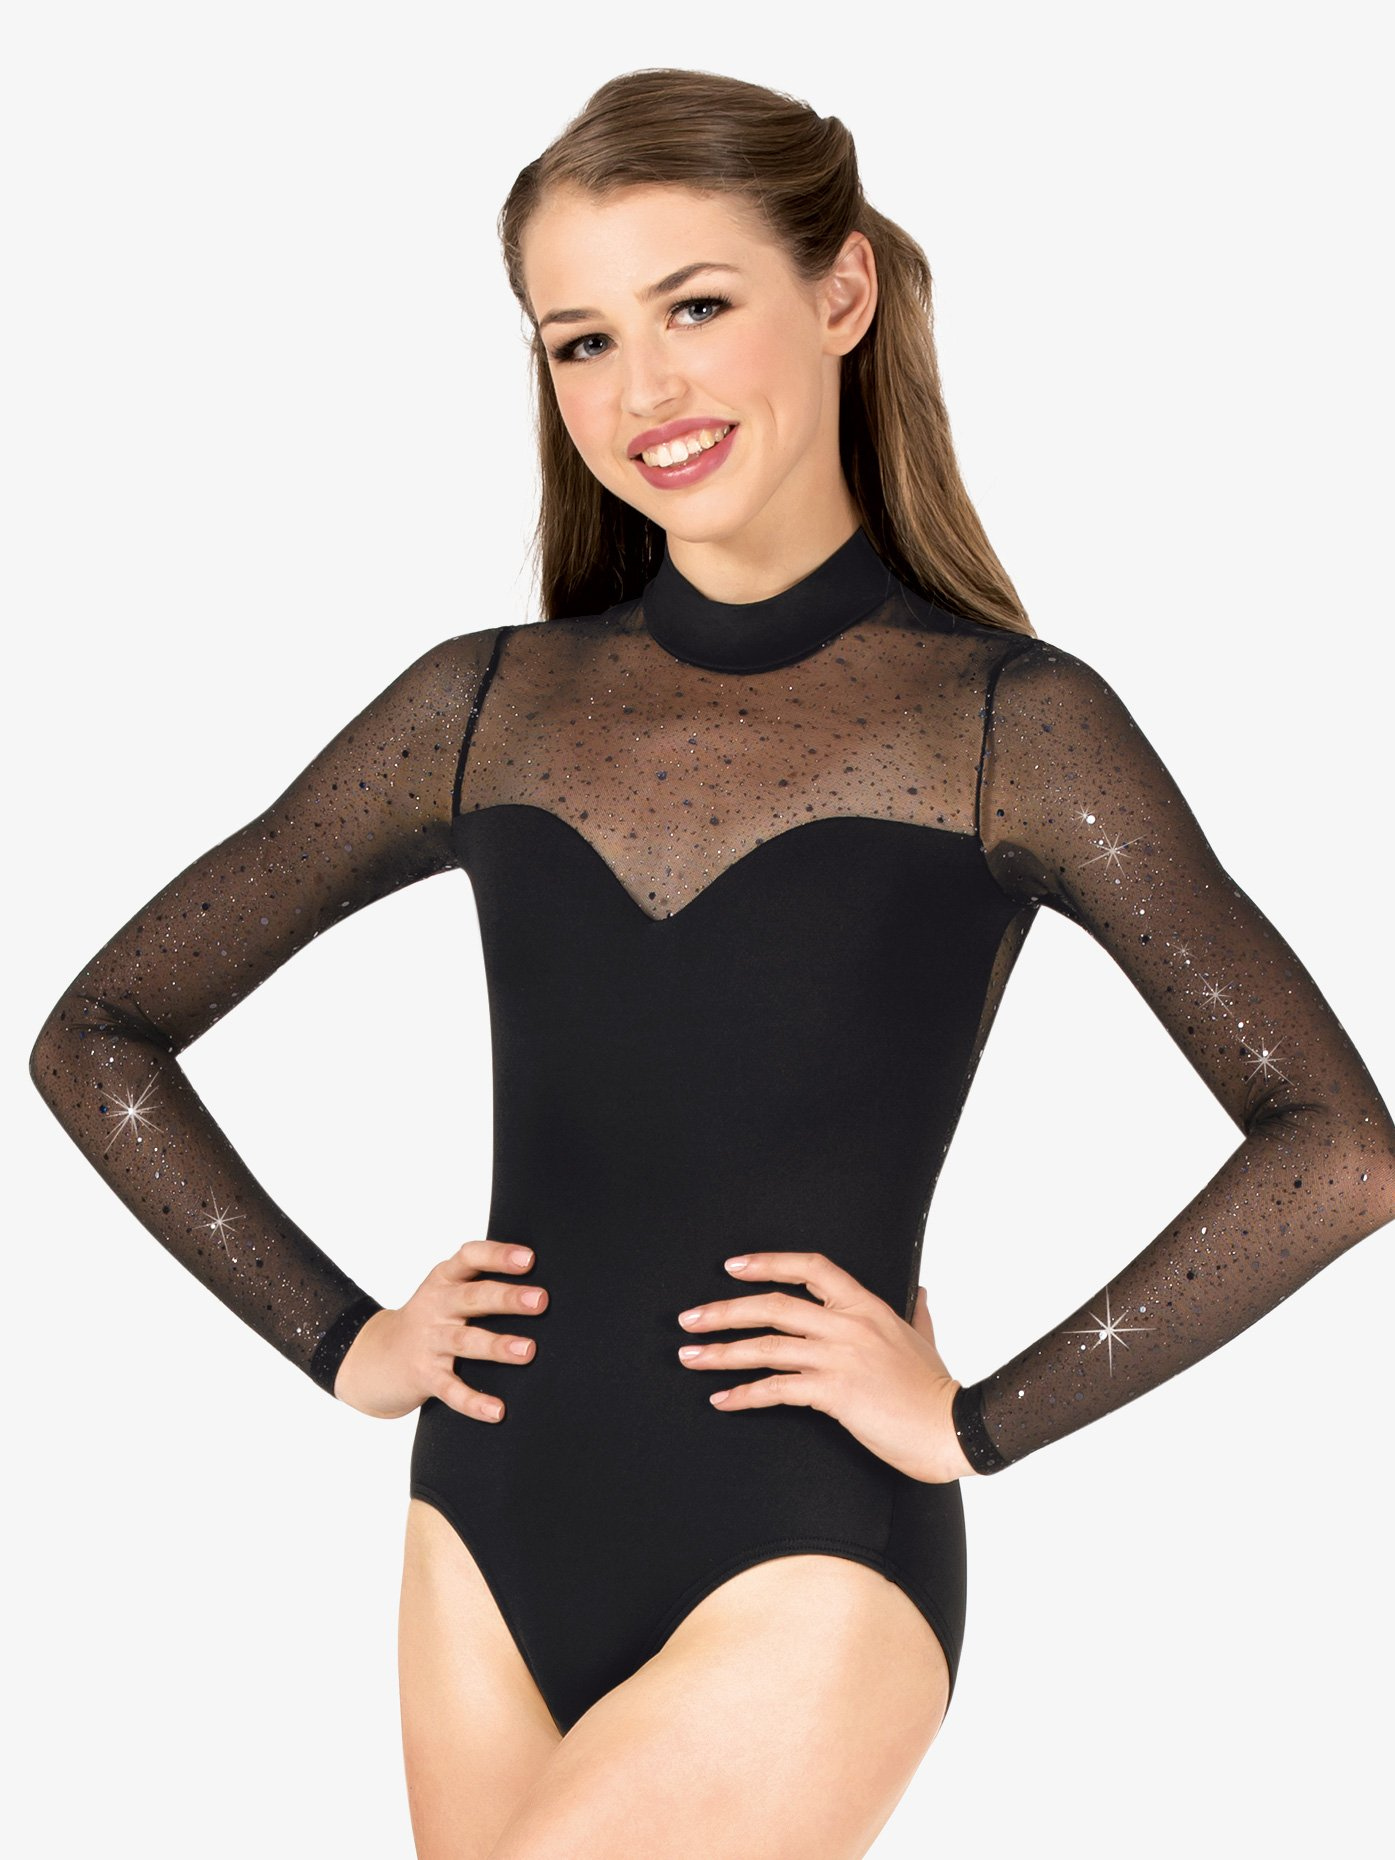 05893c9a8 Leotards page 3 at DancewearDeals.com